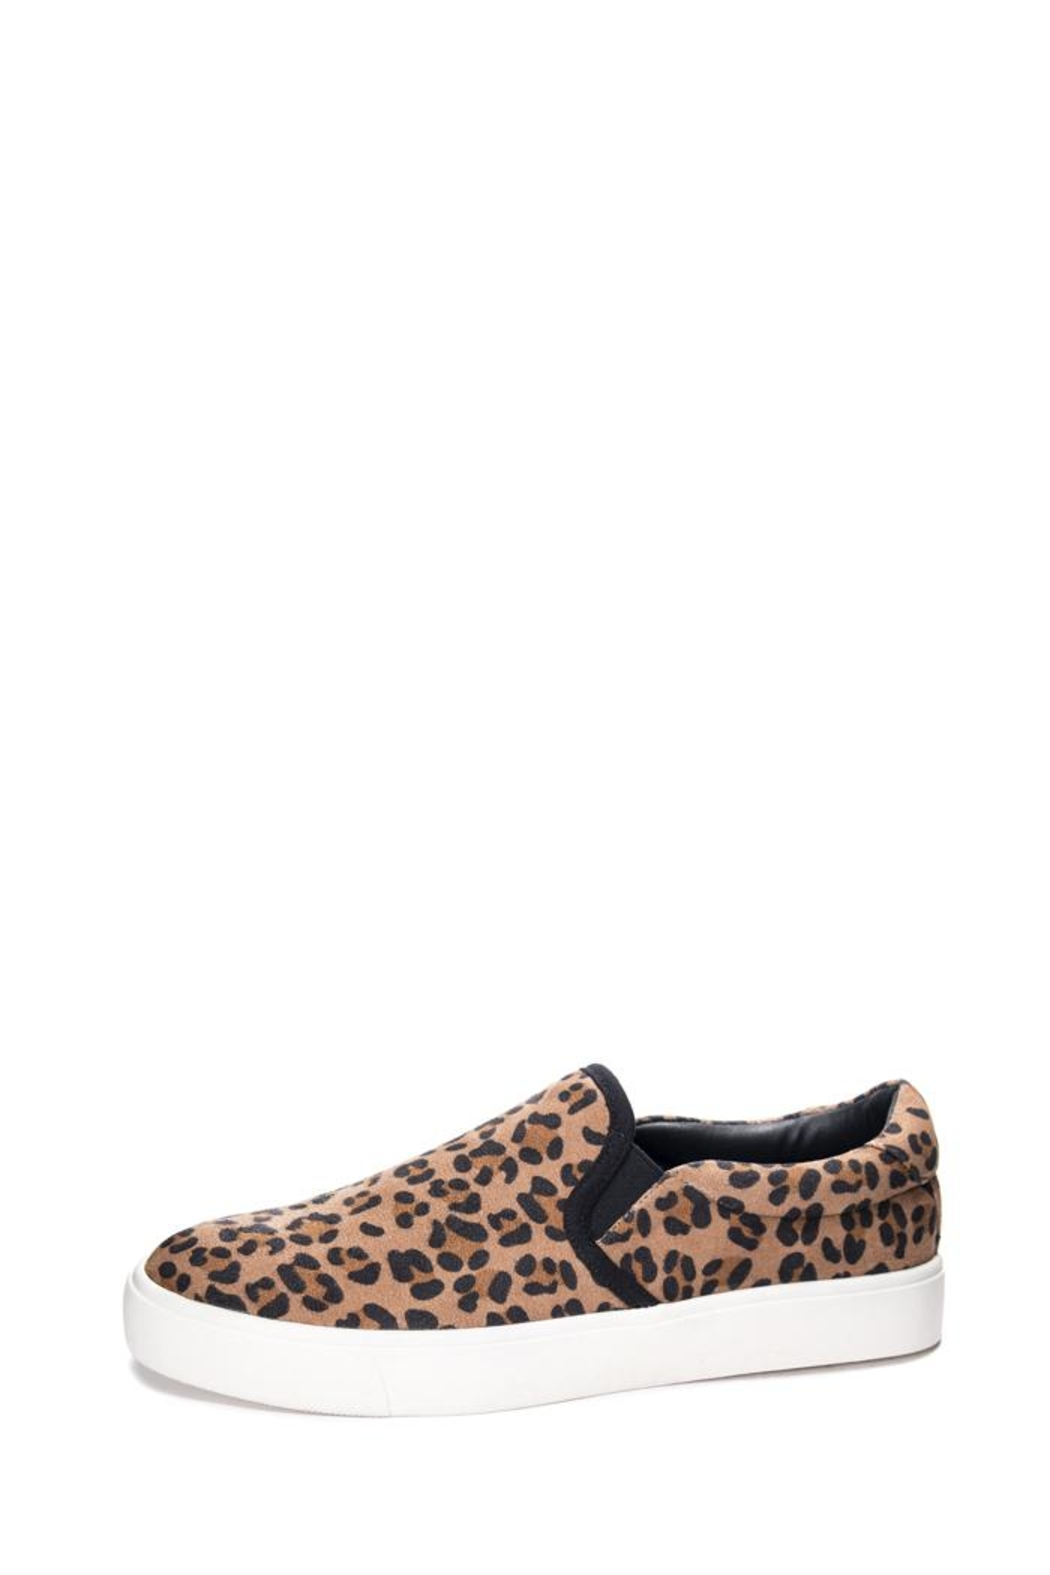 Dirty Laundry Cheetah Emory Sneakers - Front Cropped Image